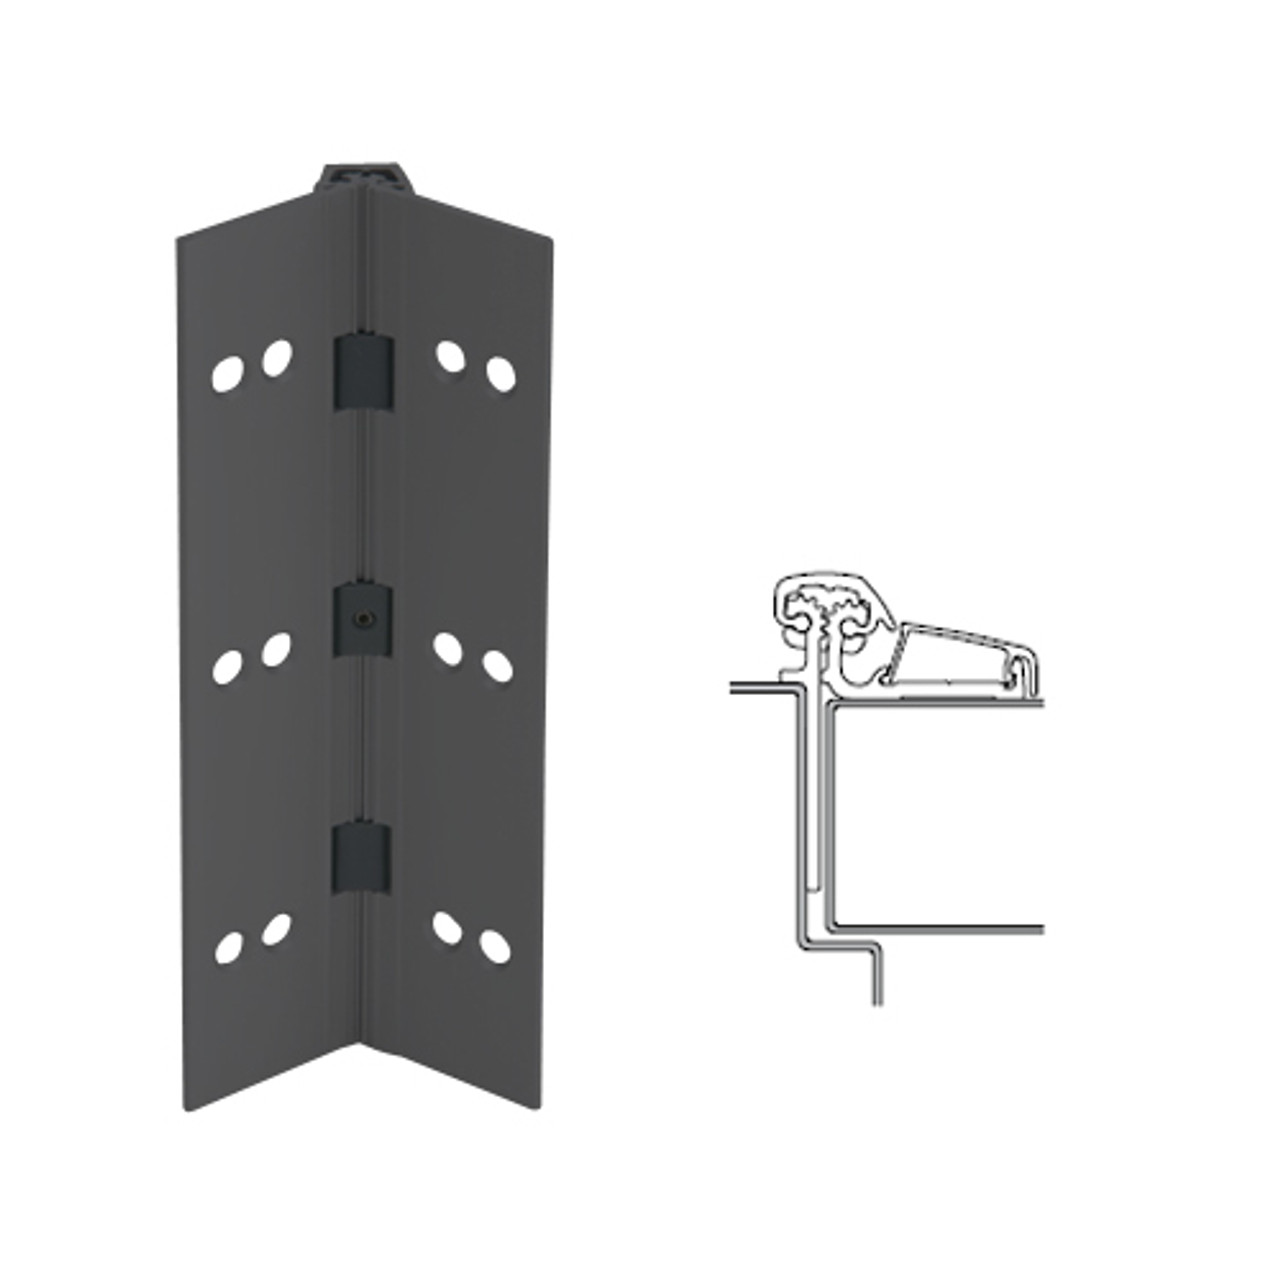 053XY-315AN-85-TEKWD IVES Adjustable Half Surface Continuous Geared Hinges with Wood Screws in Anodized Black